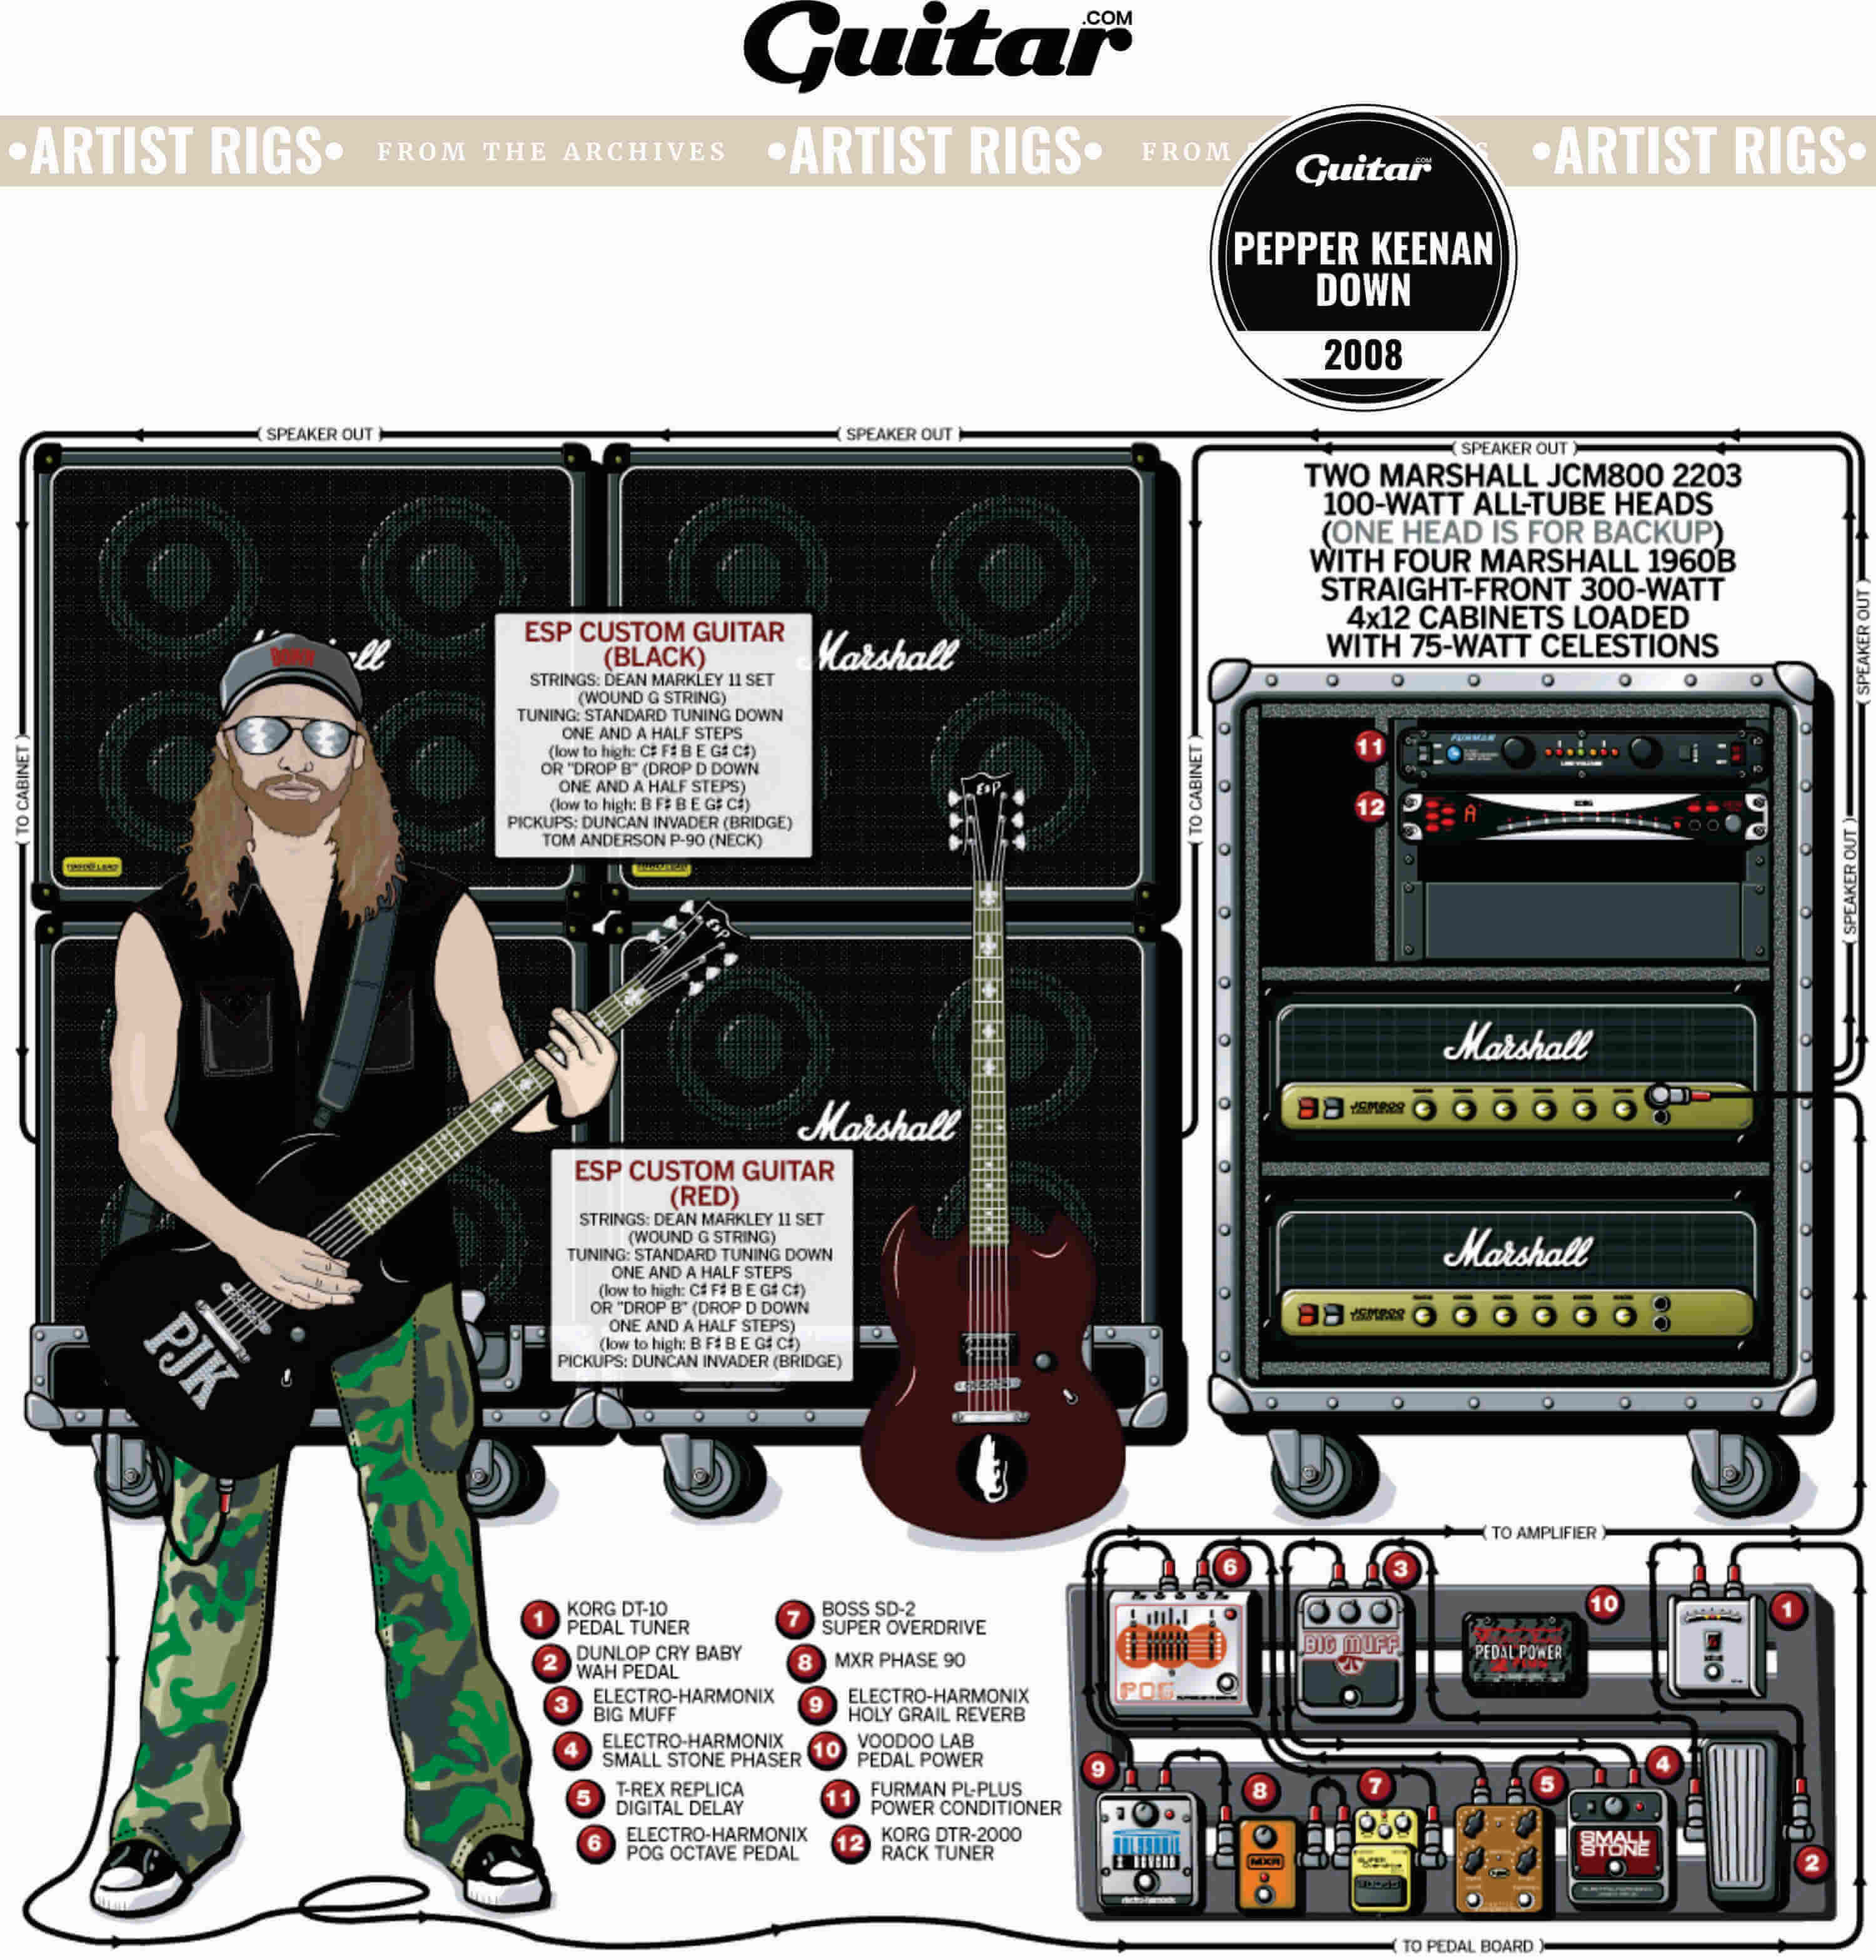 Rig Diagram: Pepper Keenan, Down (2008)